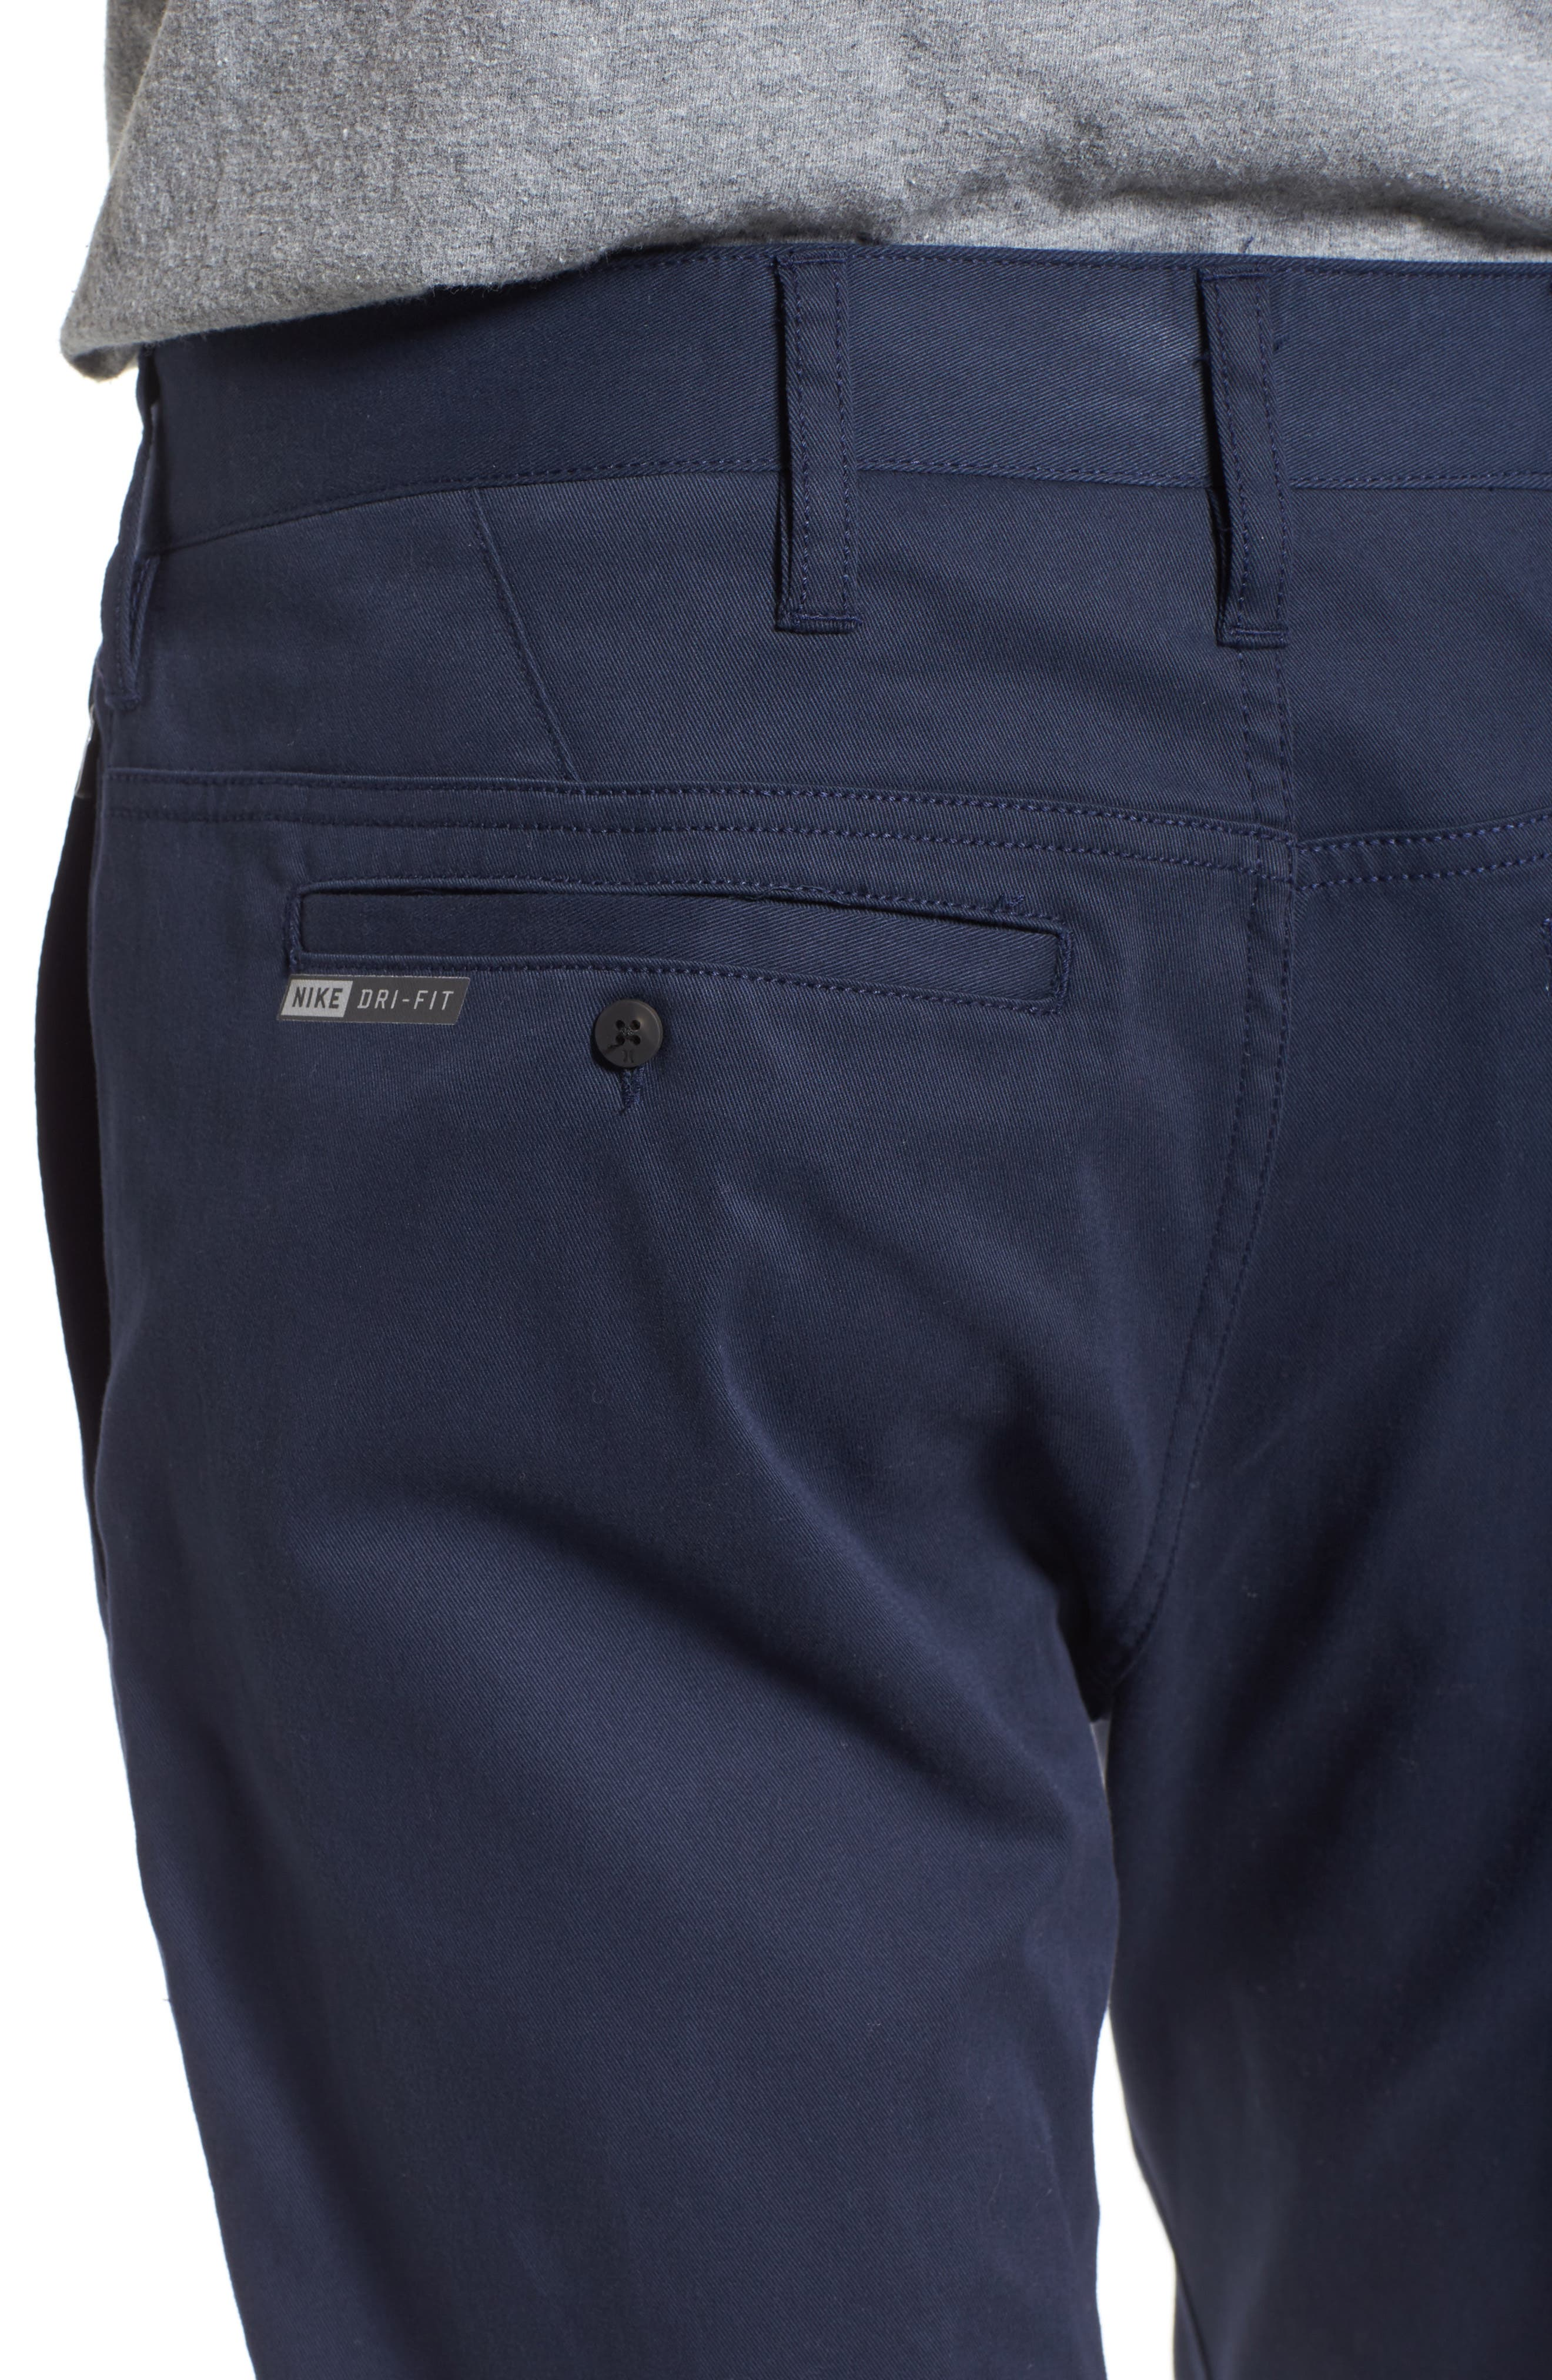 Dri-FIT Chinos,                             Alternate thumbnail 4, color,                             OBSIDIAN